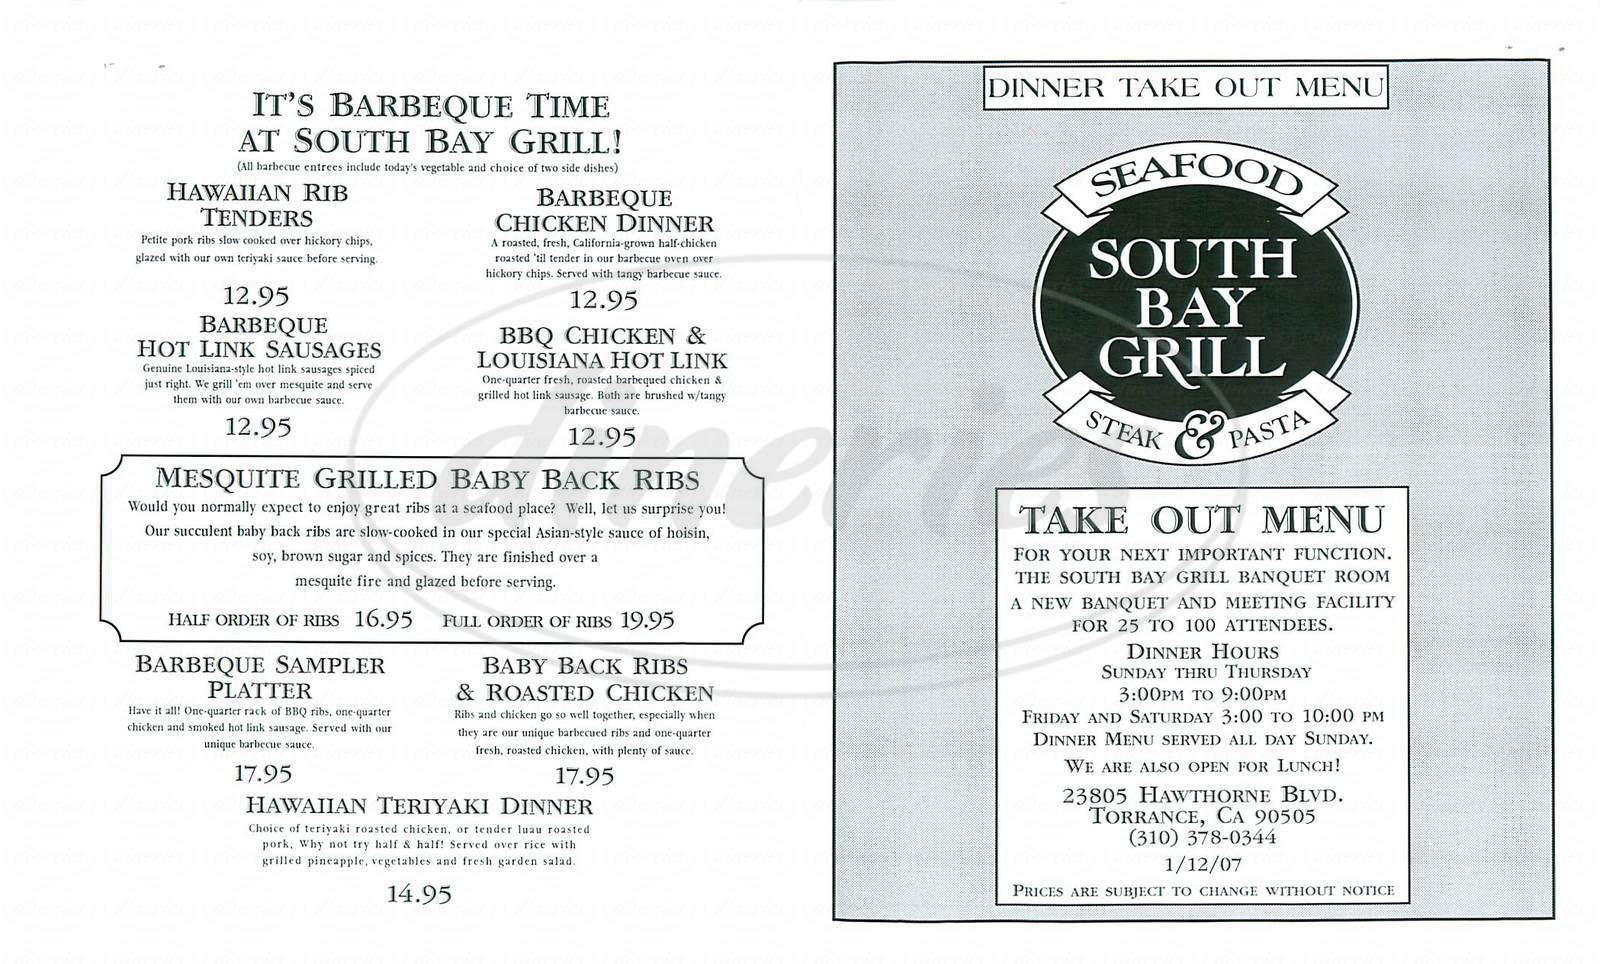 menu for South Bay Grill